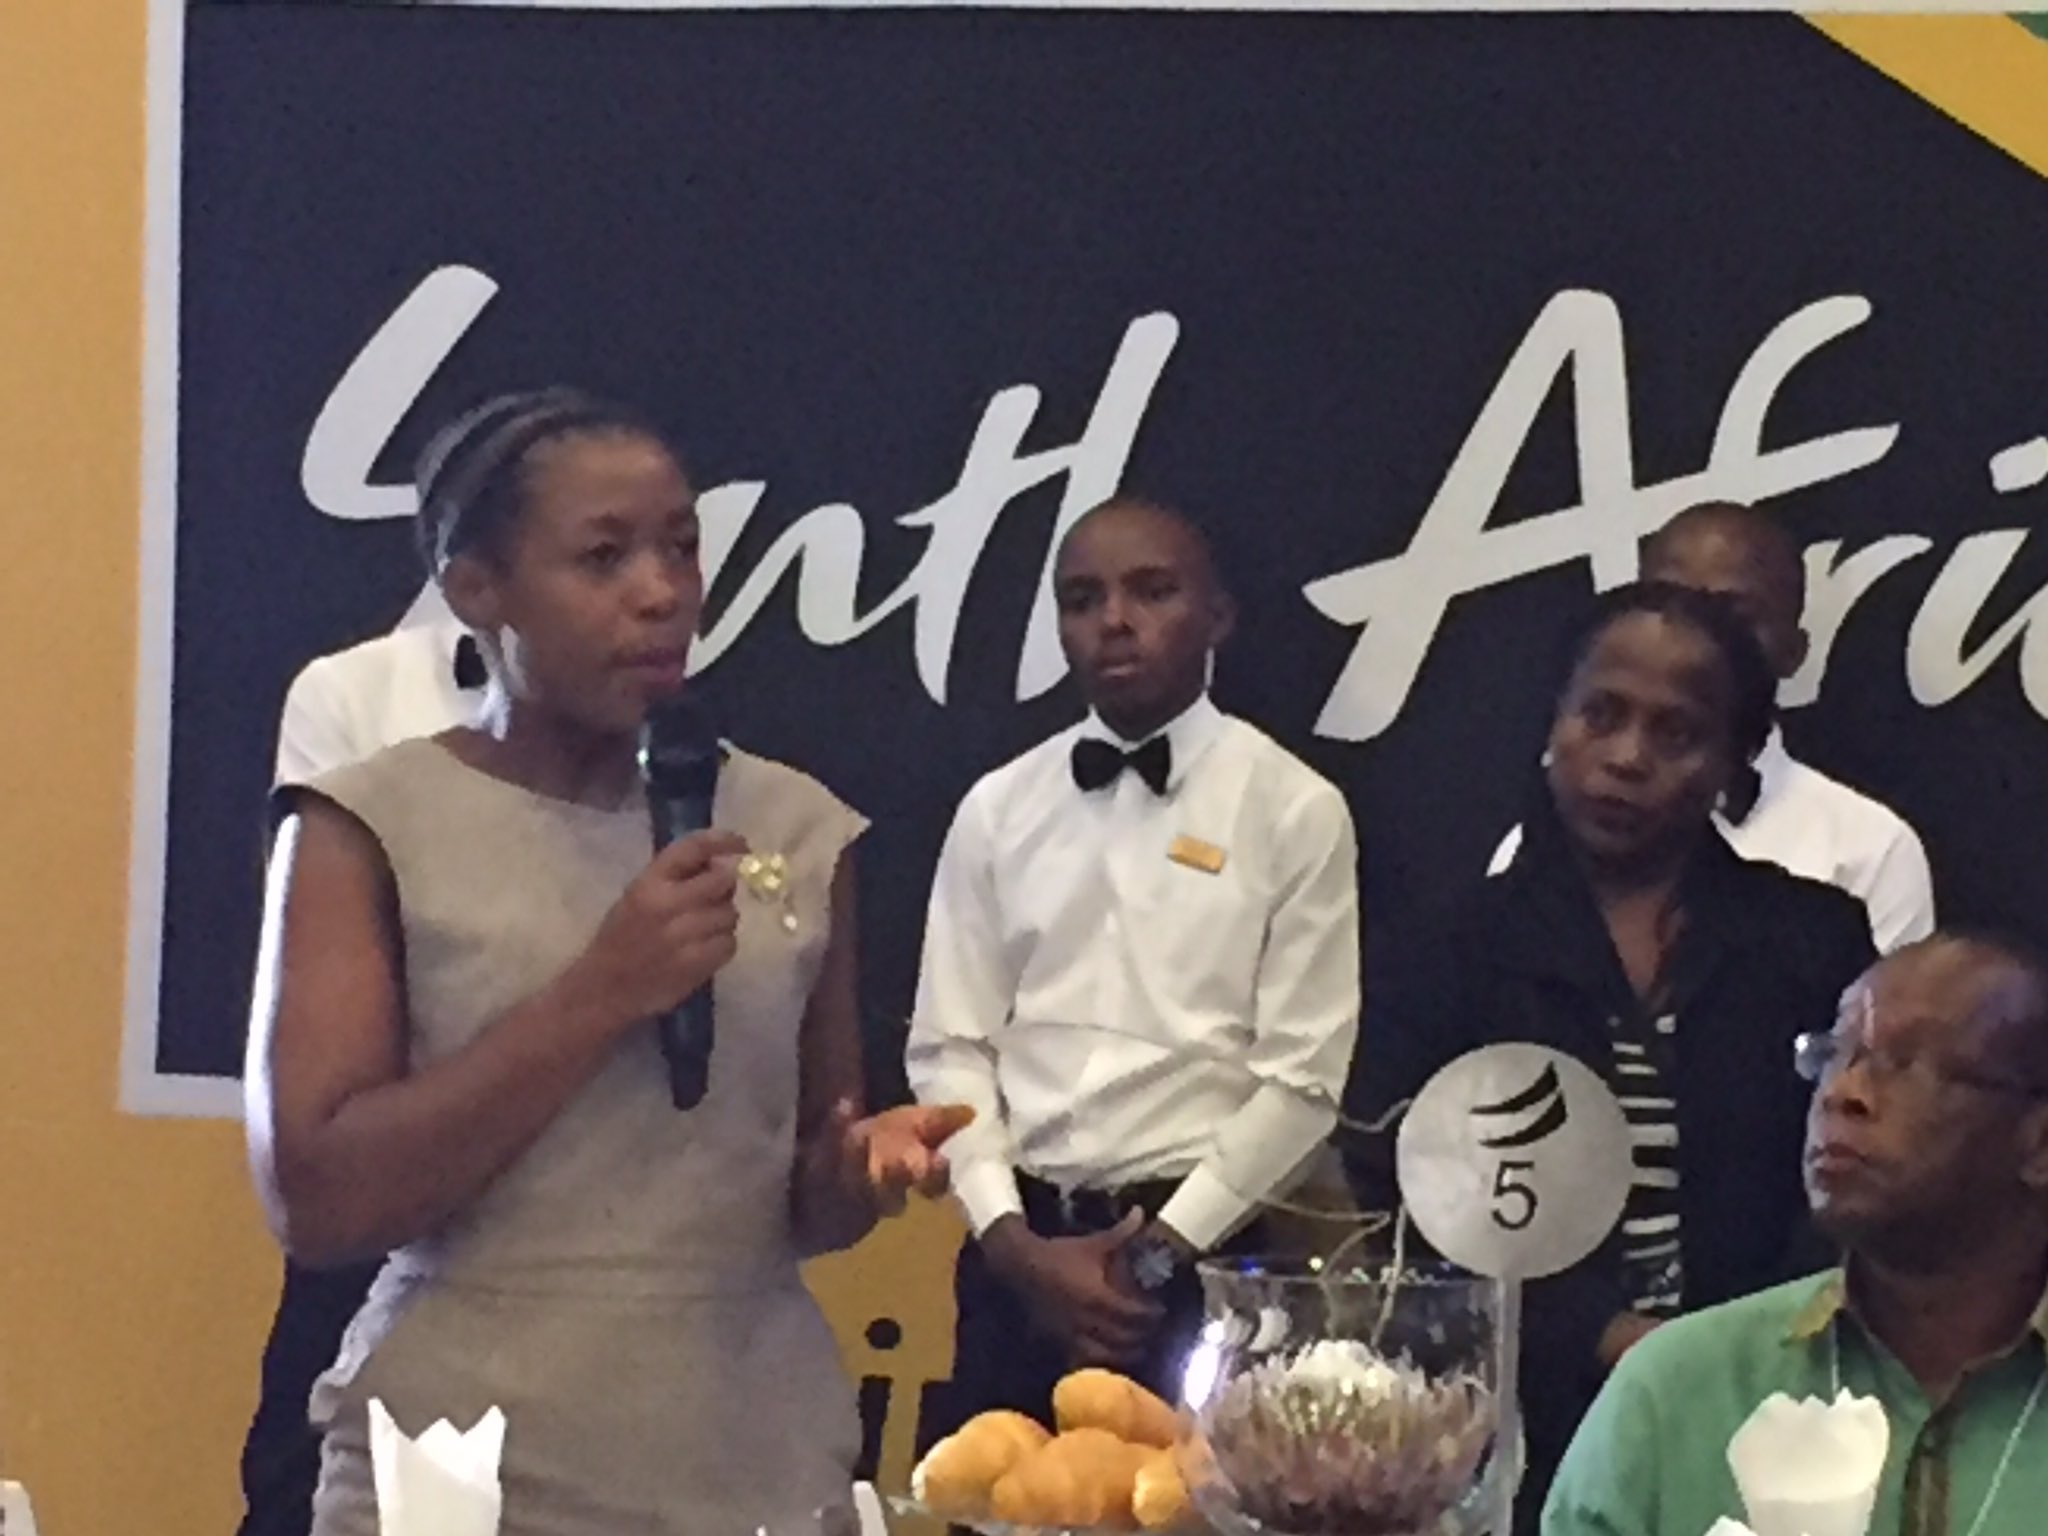 African youth want 2 study abroad as 1st prize, not within the continent #BrandSAYouthBreakfast #WEFAfrica2017 cc @Brand_SA @Andile_Khumalo https://t.co/Cyrs17GEWV